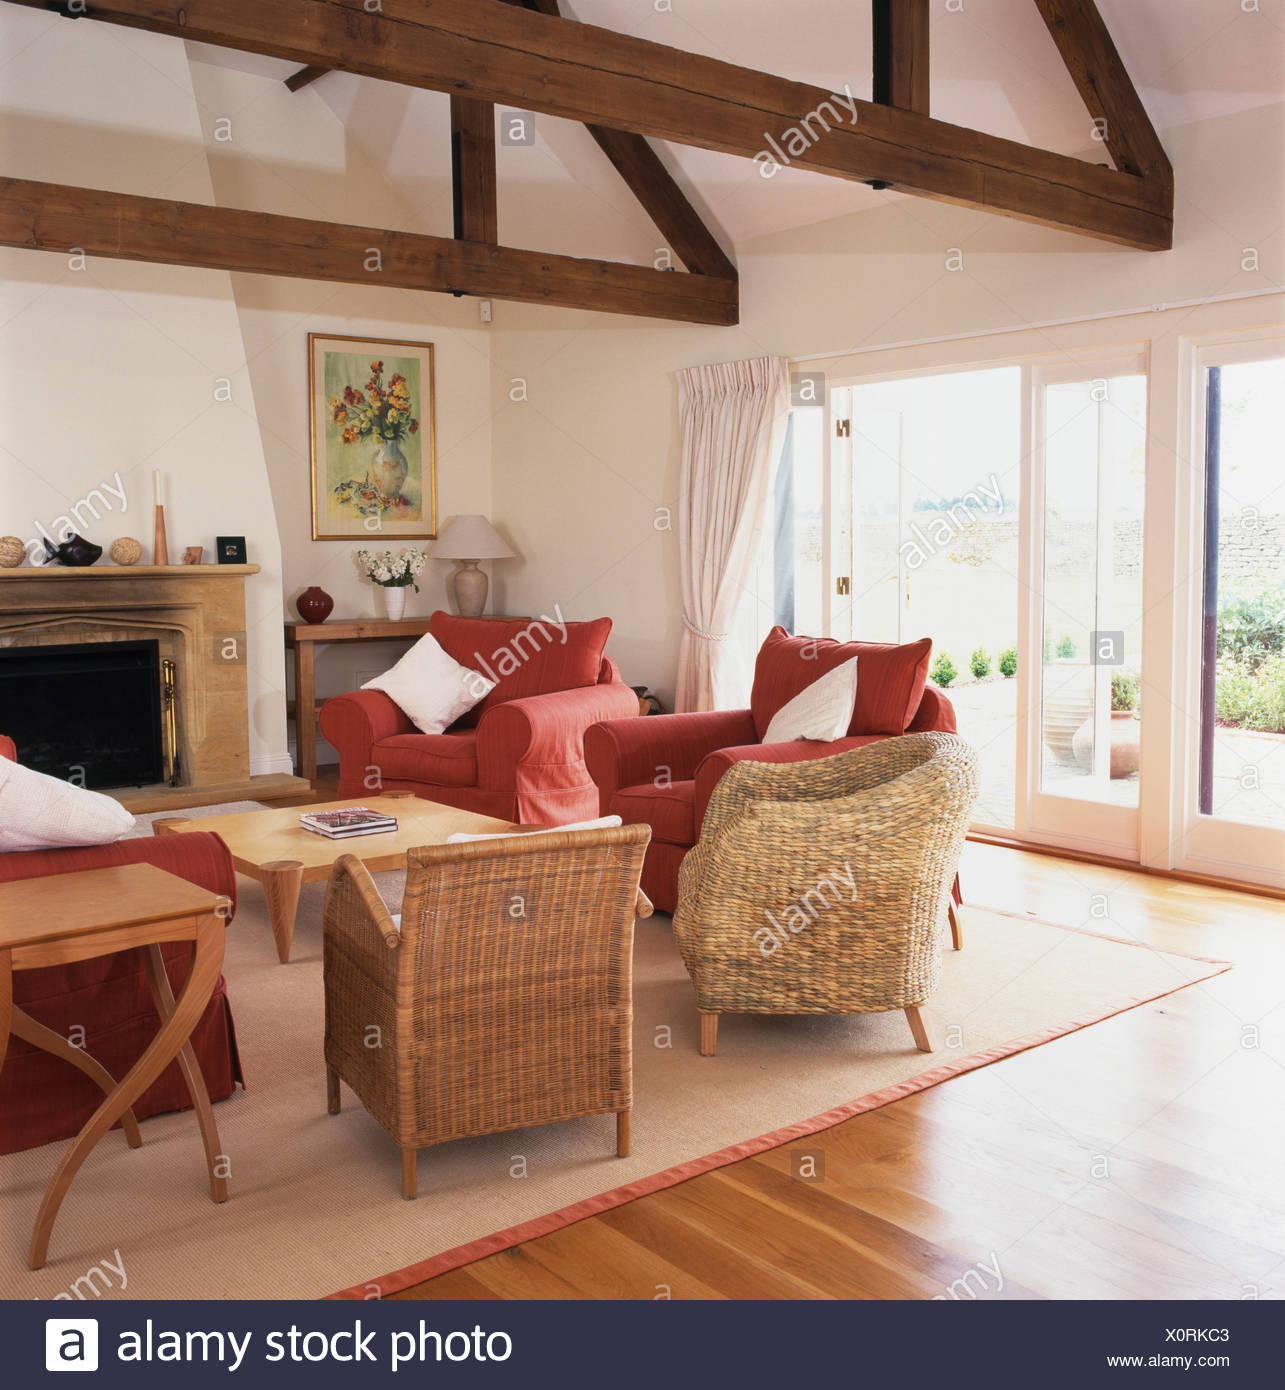 Cane And Wicker Chairs In Barn Conversion Living Room With